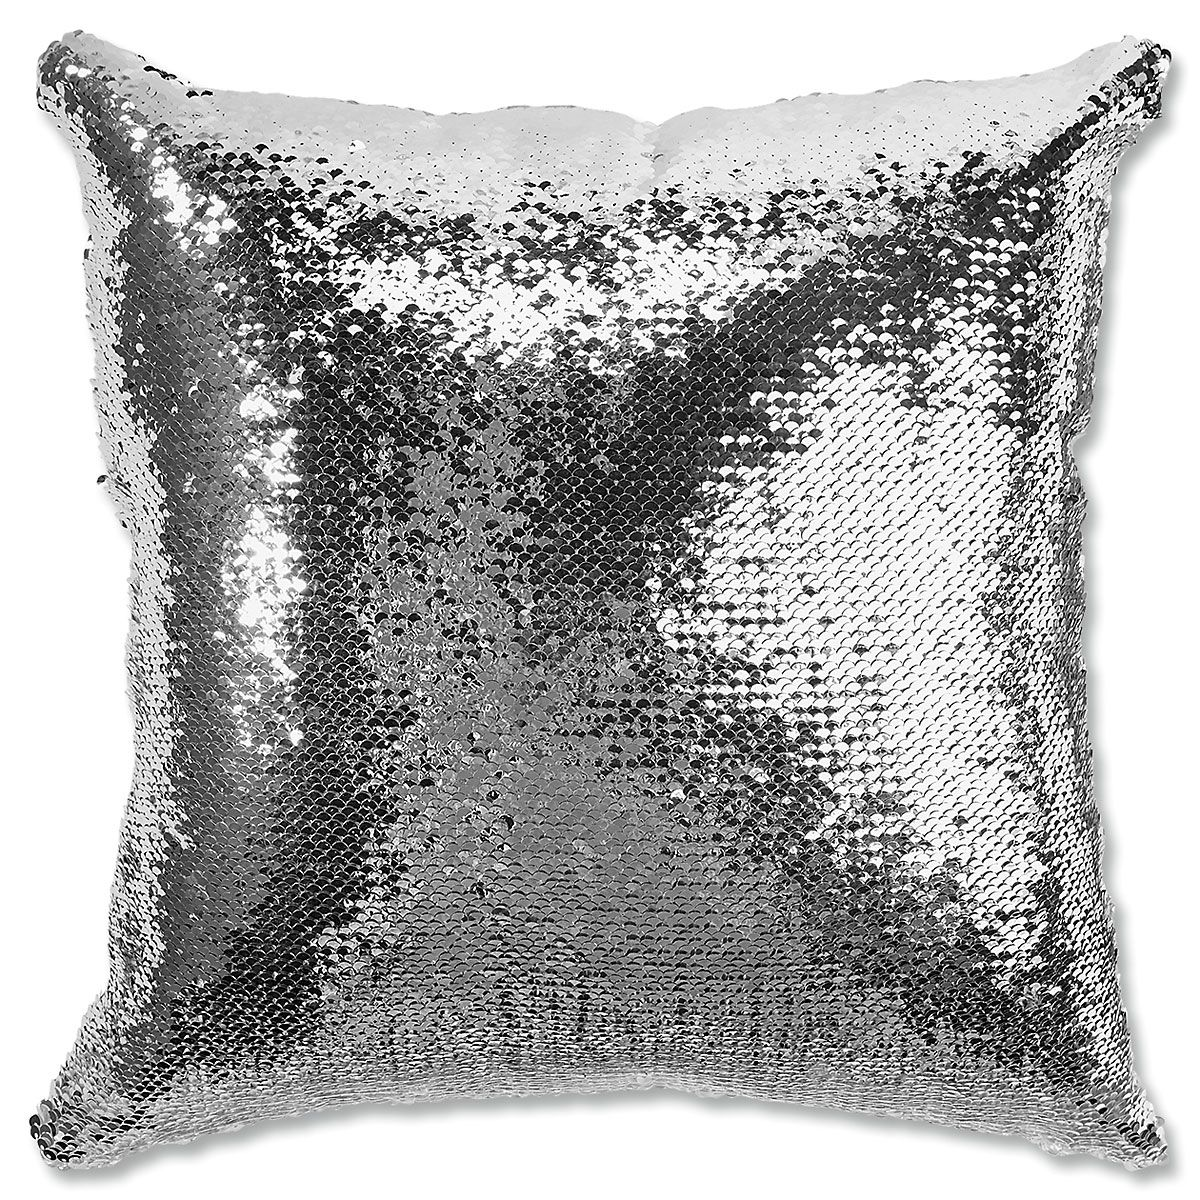 Sequined Name in Wreath Pillow